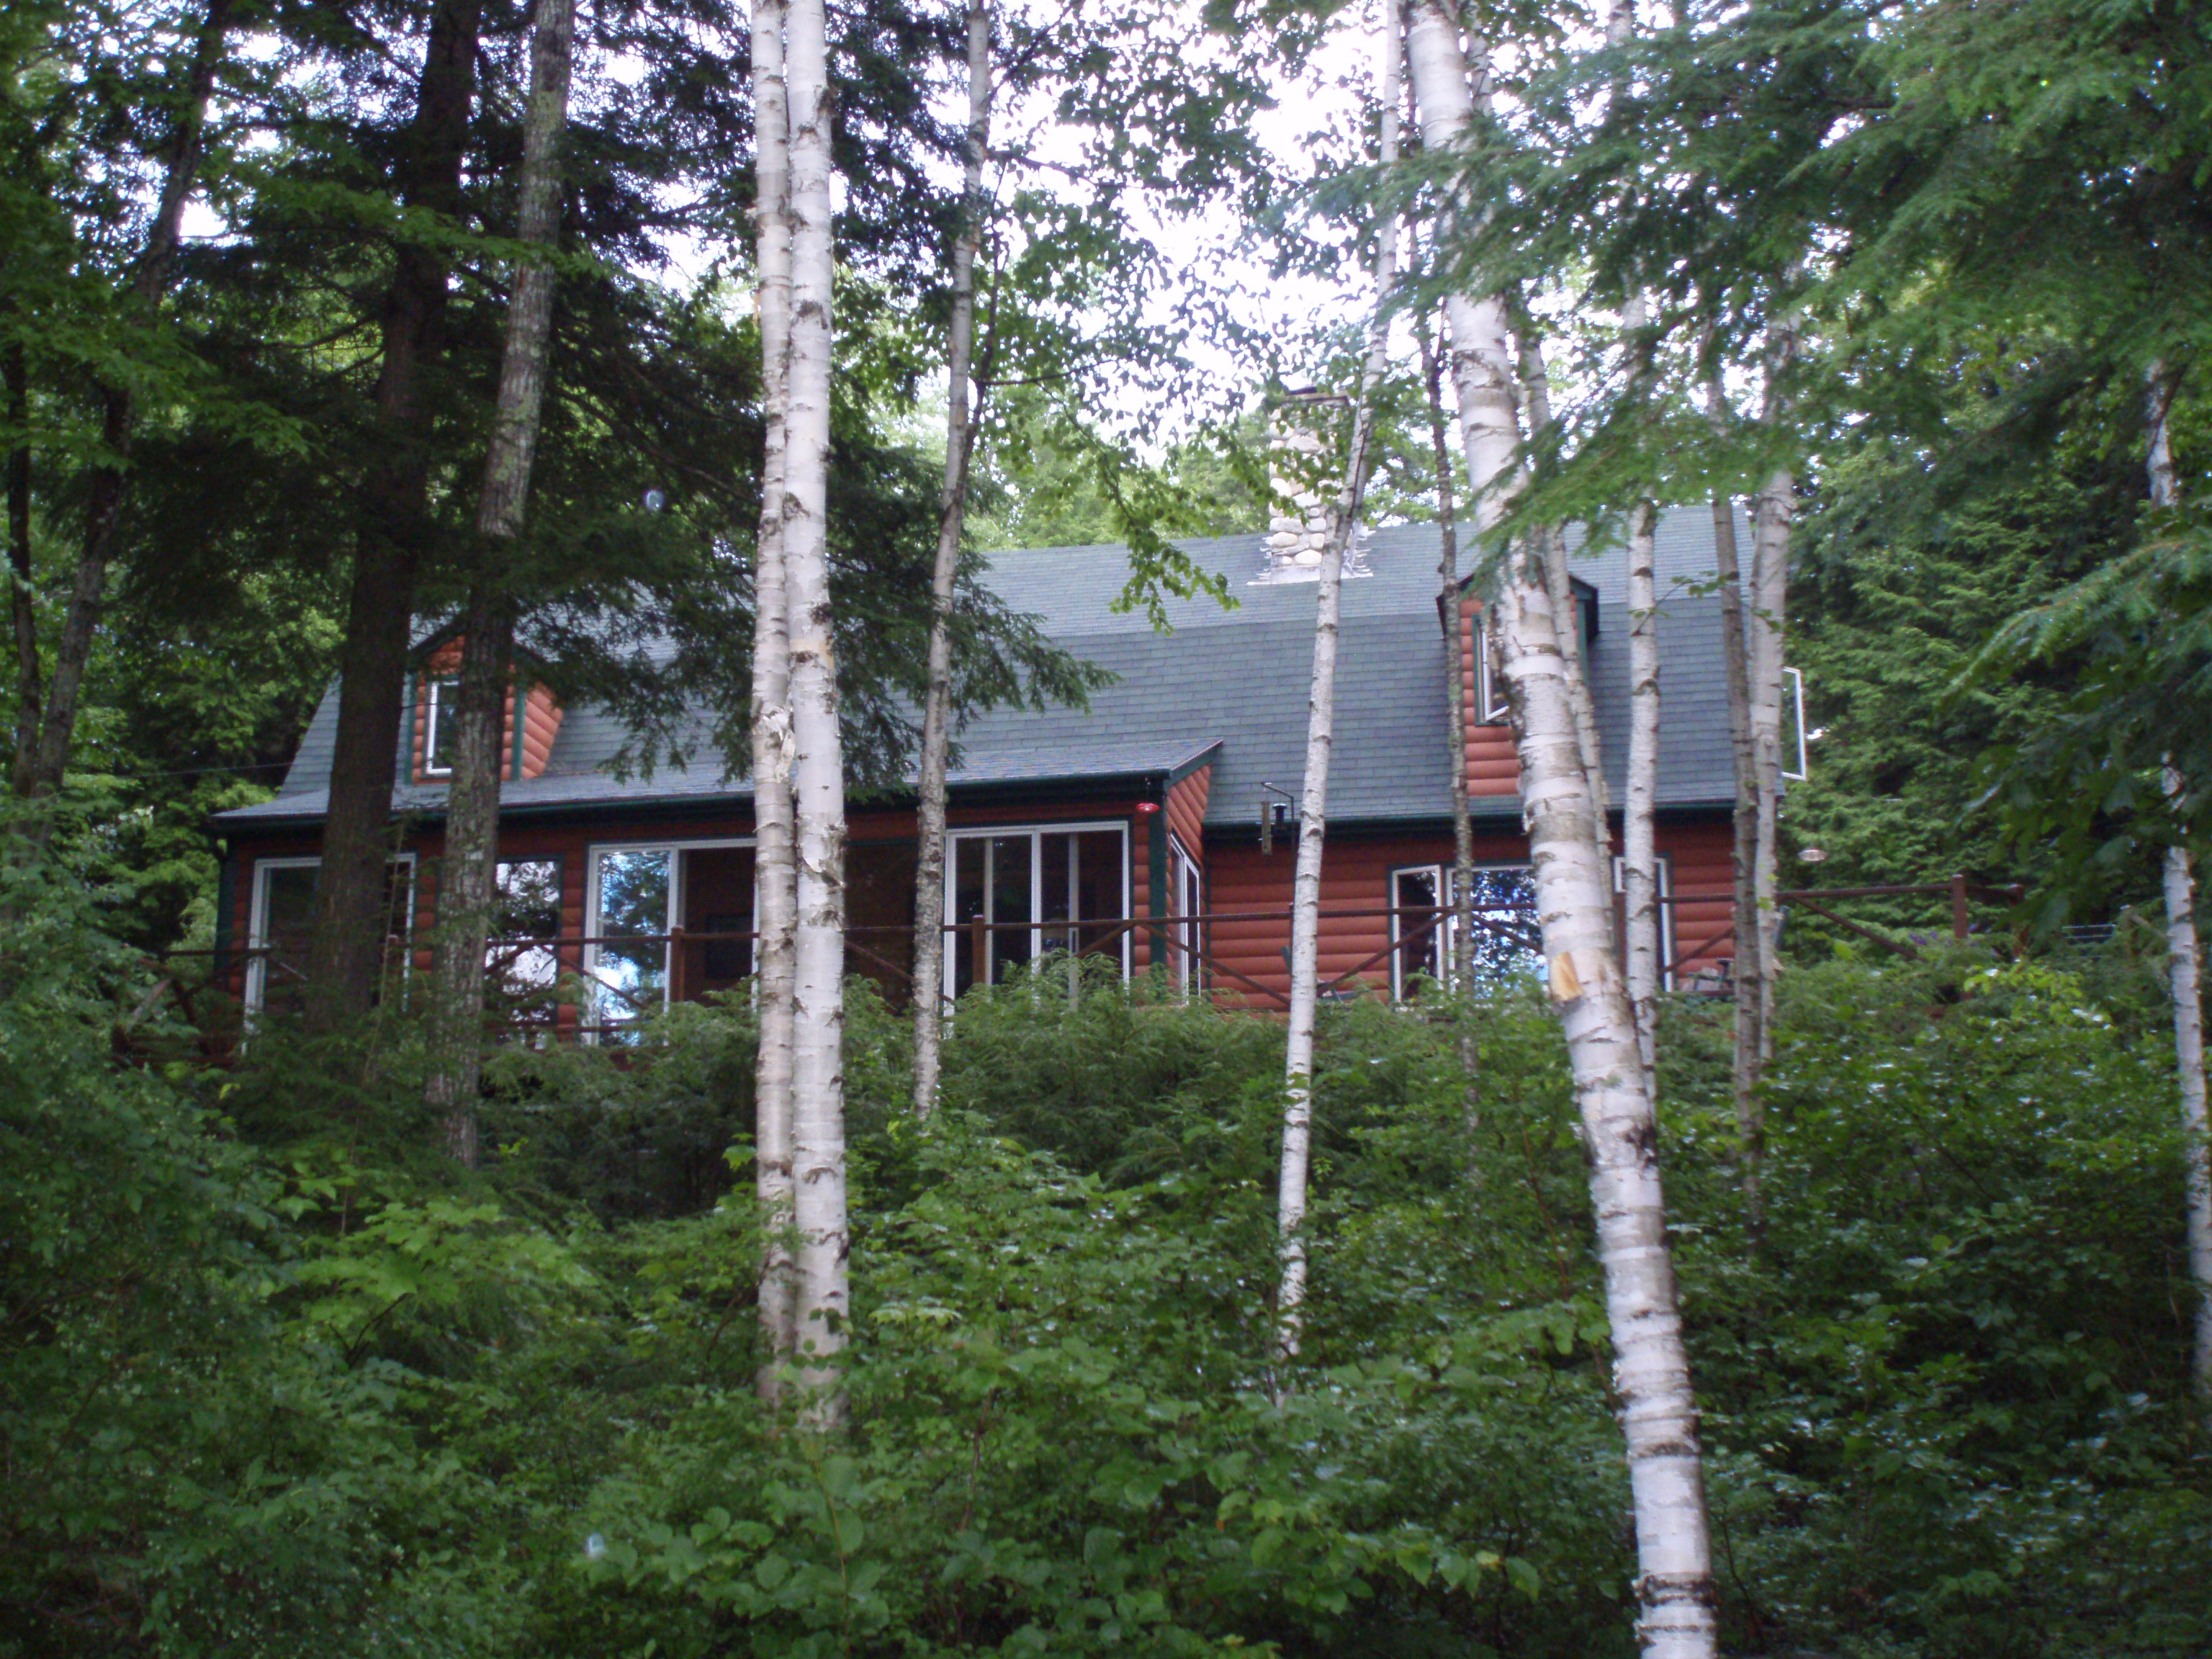 deer hawkes cottages for properties peter north brook home sold sale dsc farm yarmouth waterfront maine